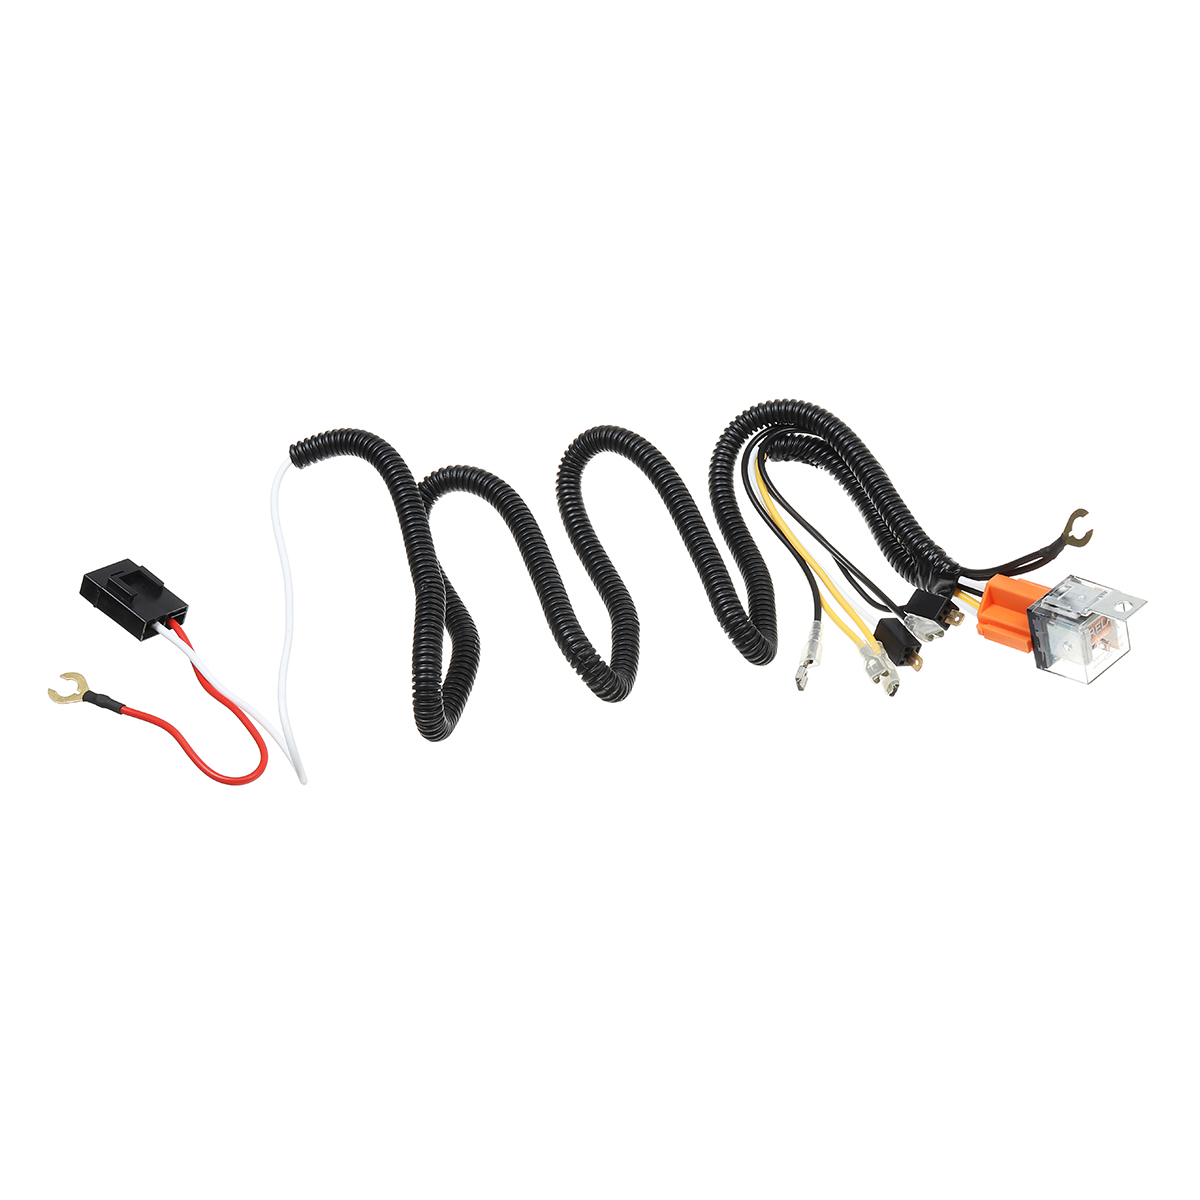 12v 40a Horn Wiring Harness Relay Kit For Car Truck Grille